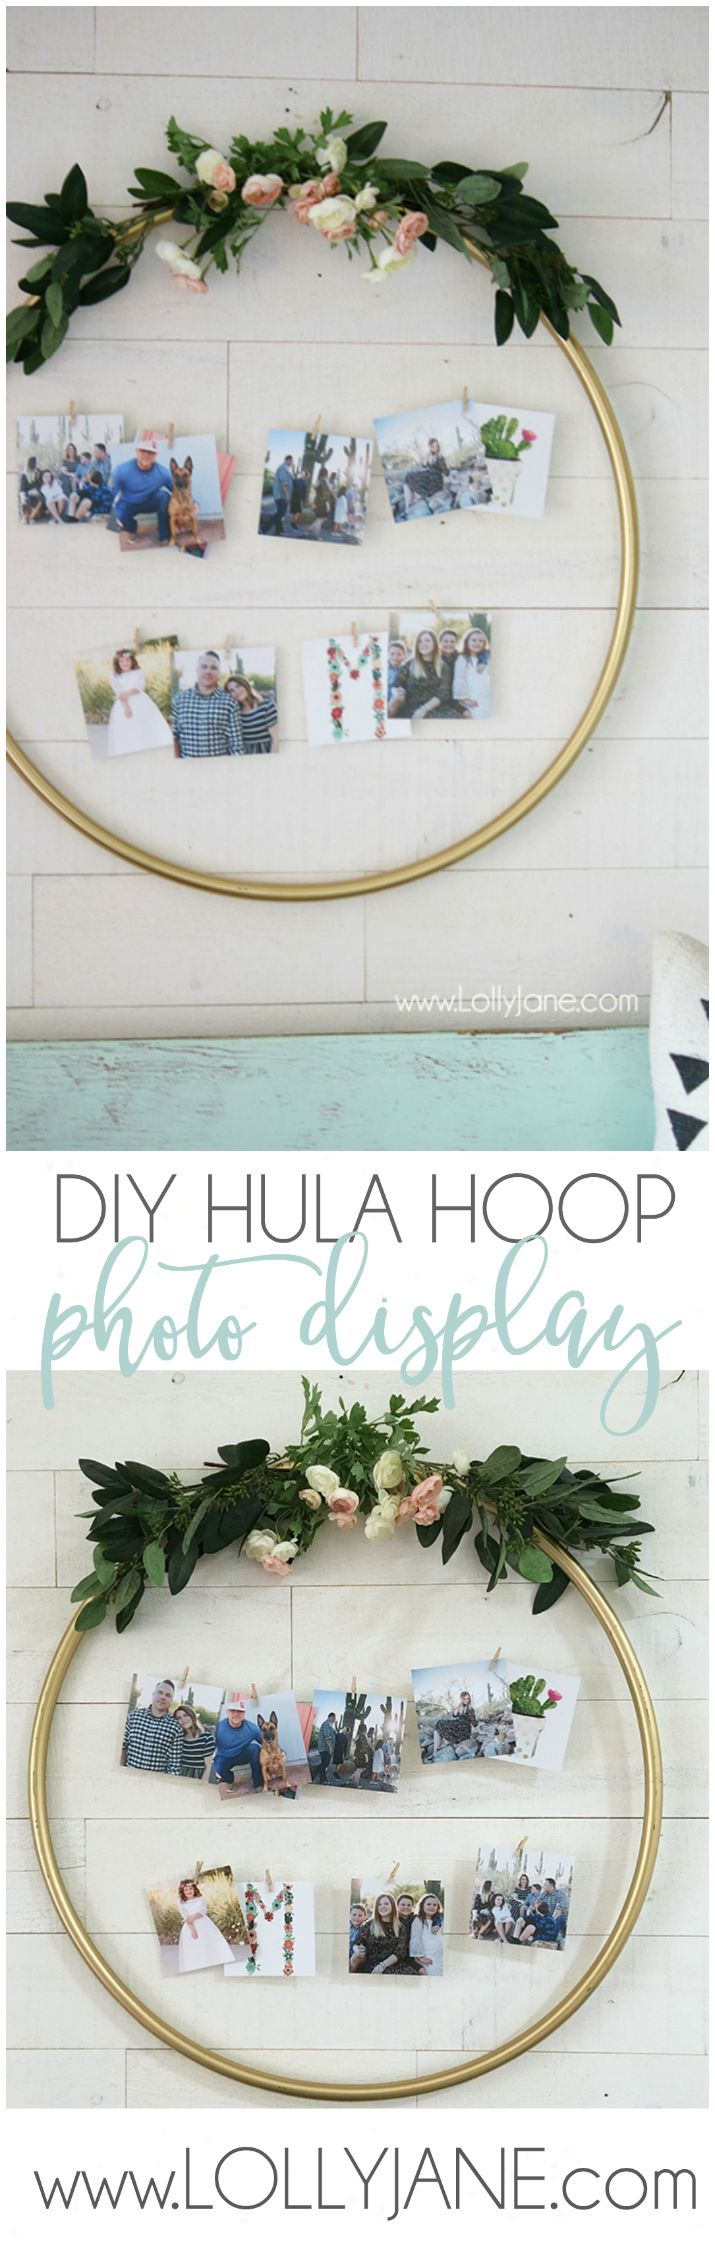 DIY Hula Hoop Photo Display | Check out this easy hula hoop photo display idea! Such a creative way to display pictures with unique items!